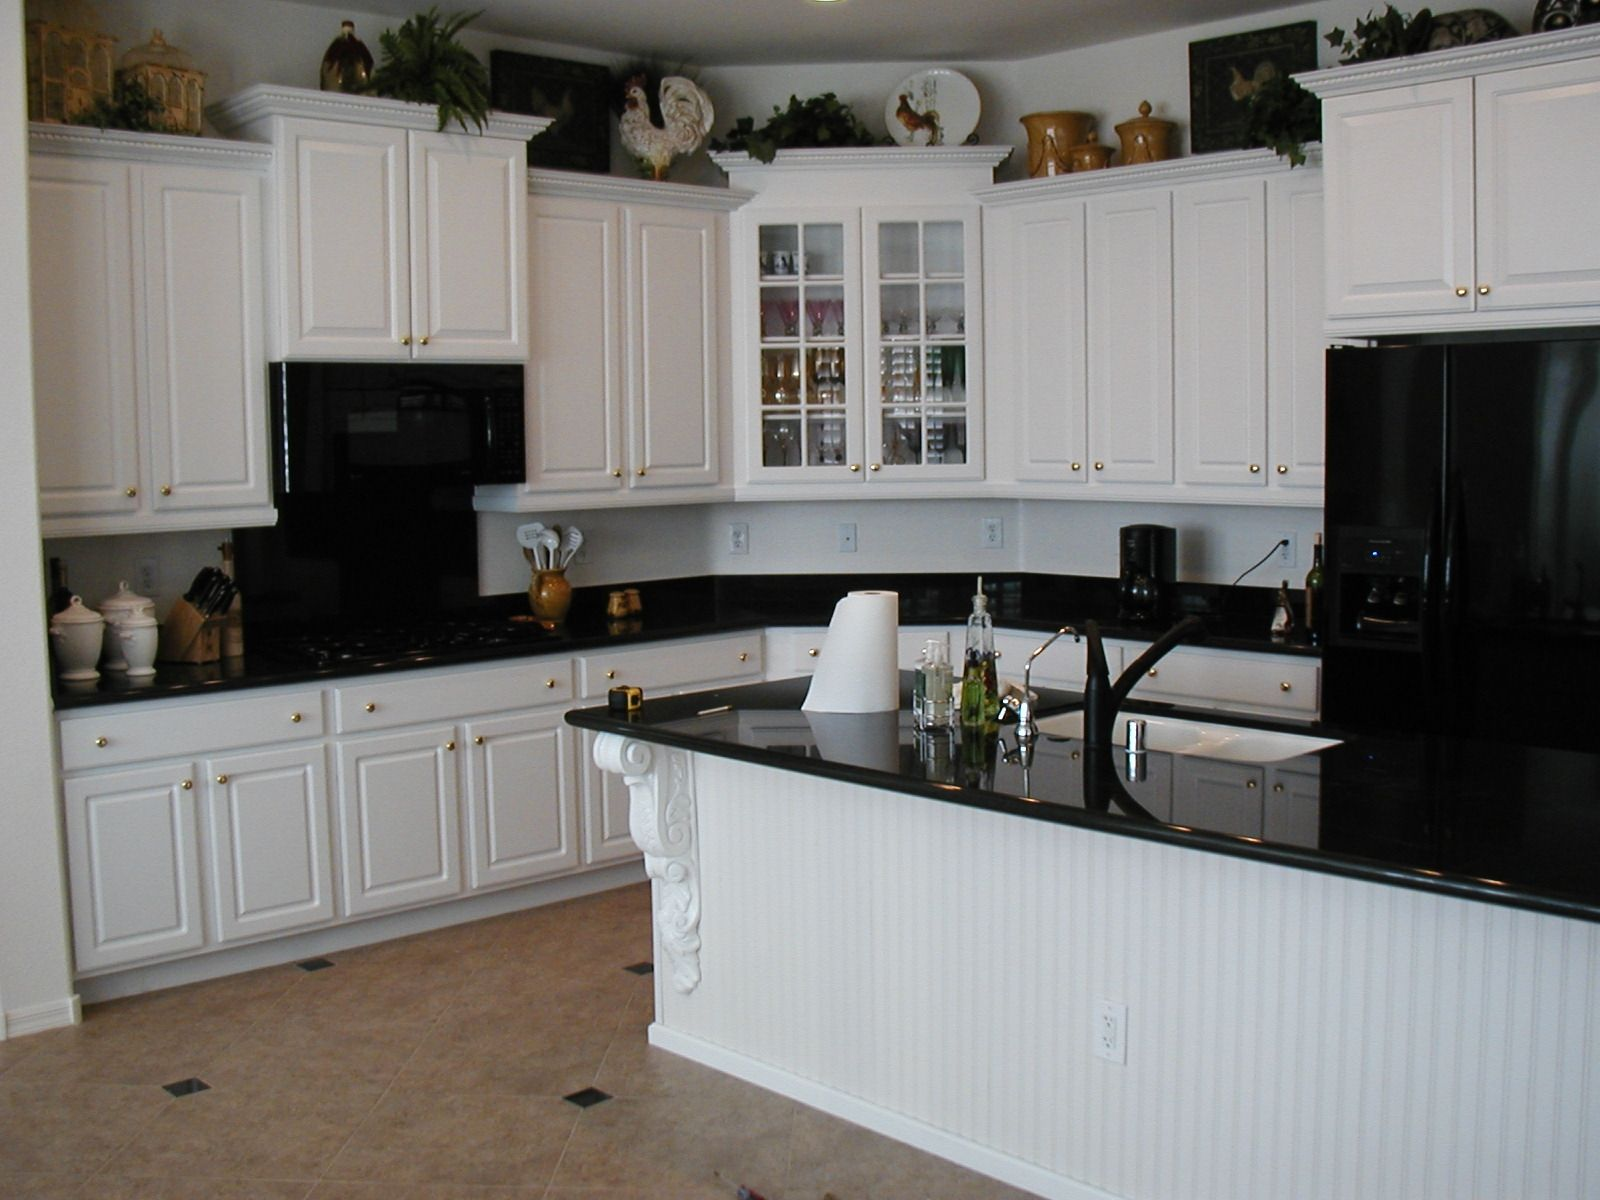 Kitchen Cabinets Black Appliances creamy white kitchen cabinets with black appliances | are white